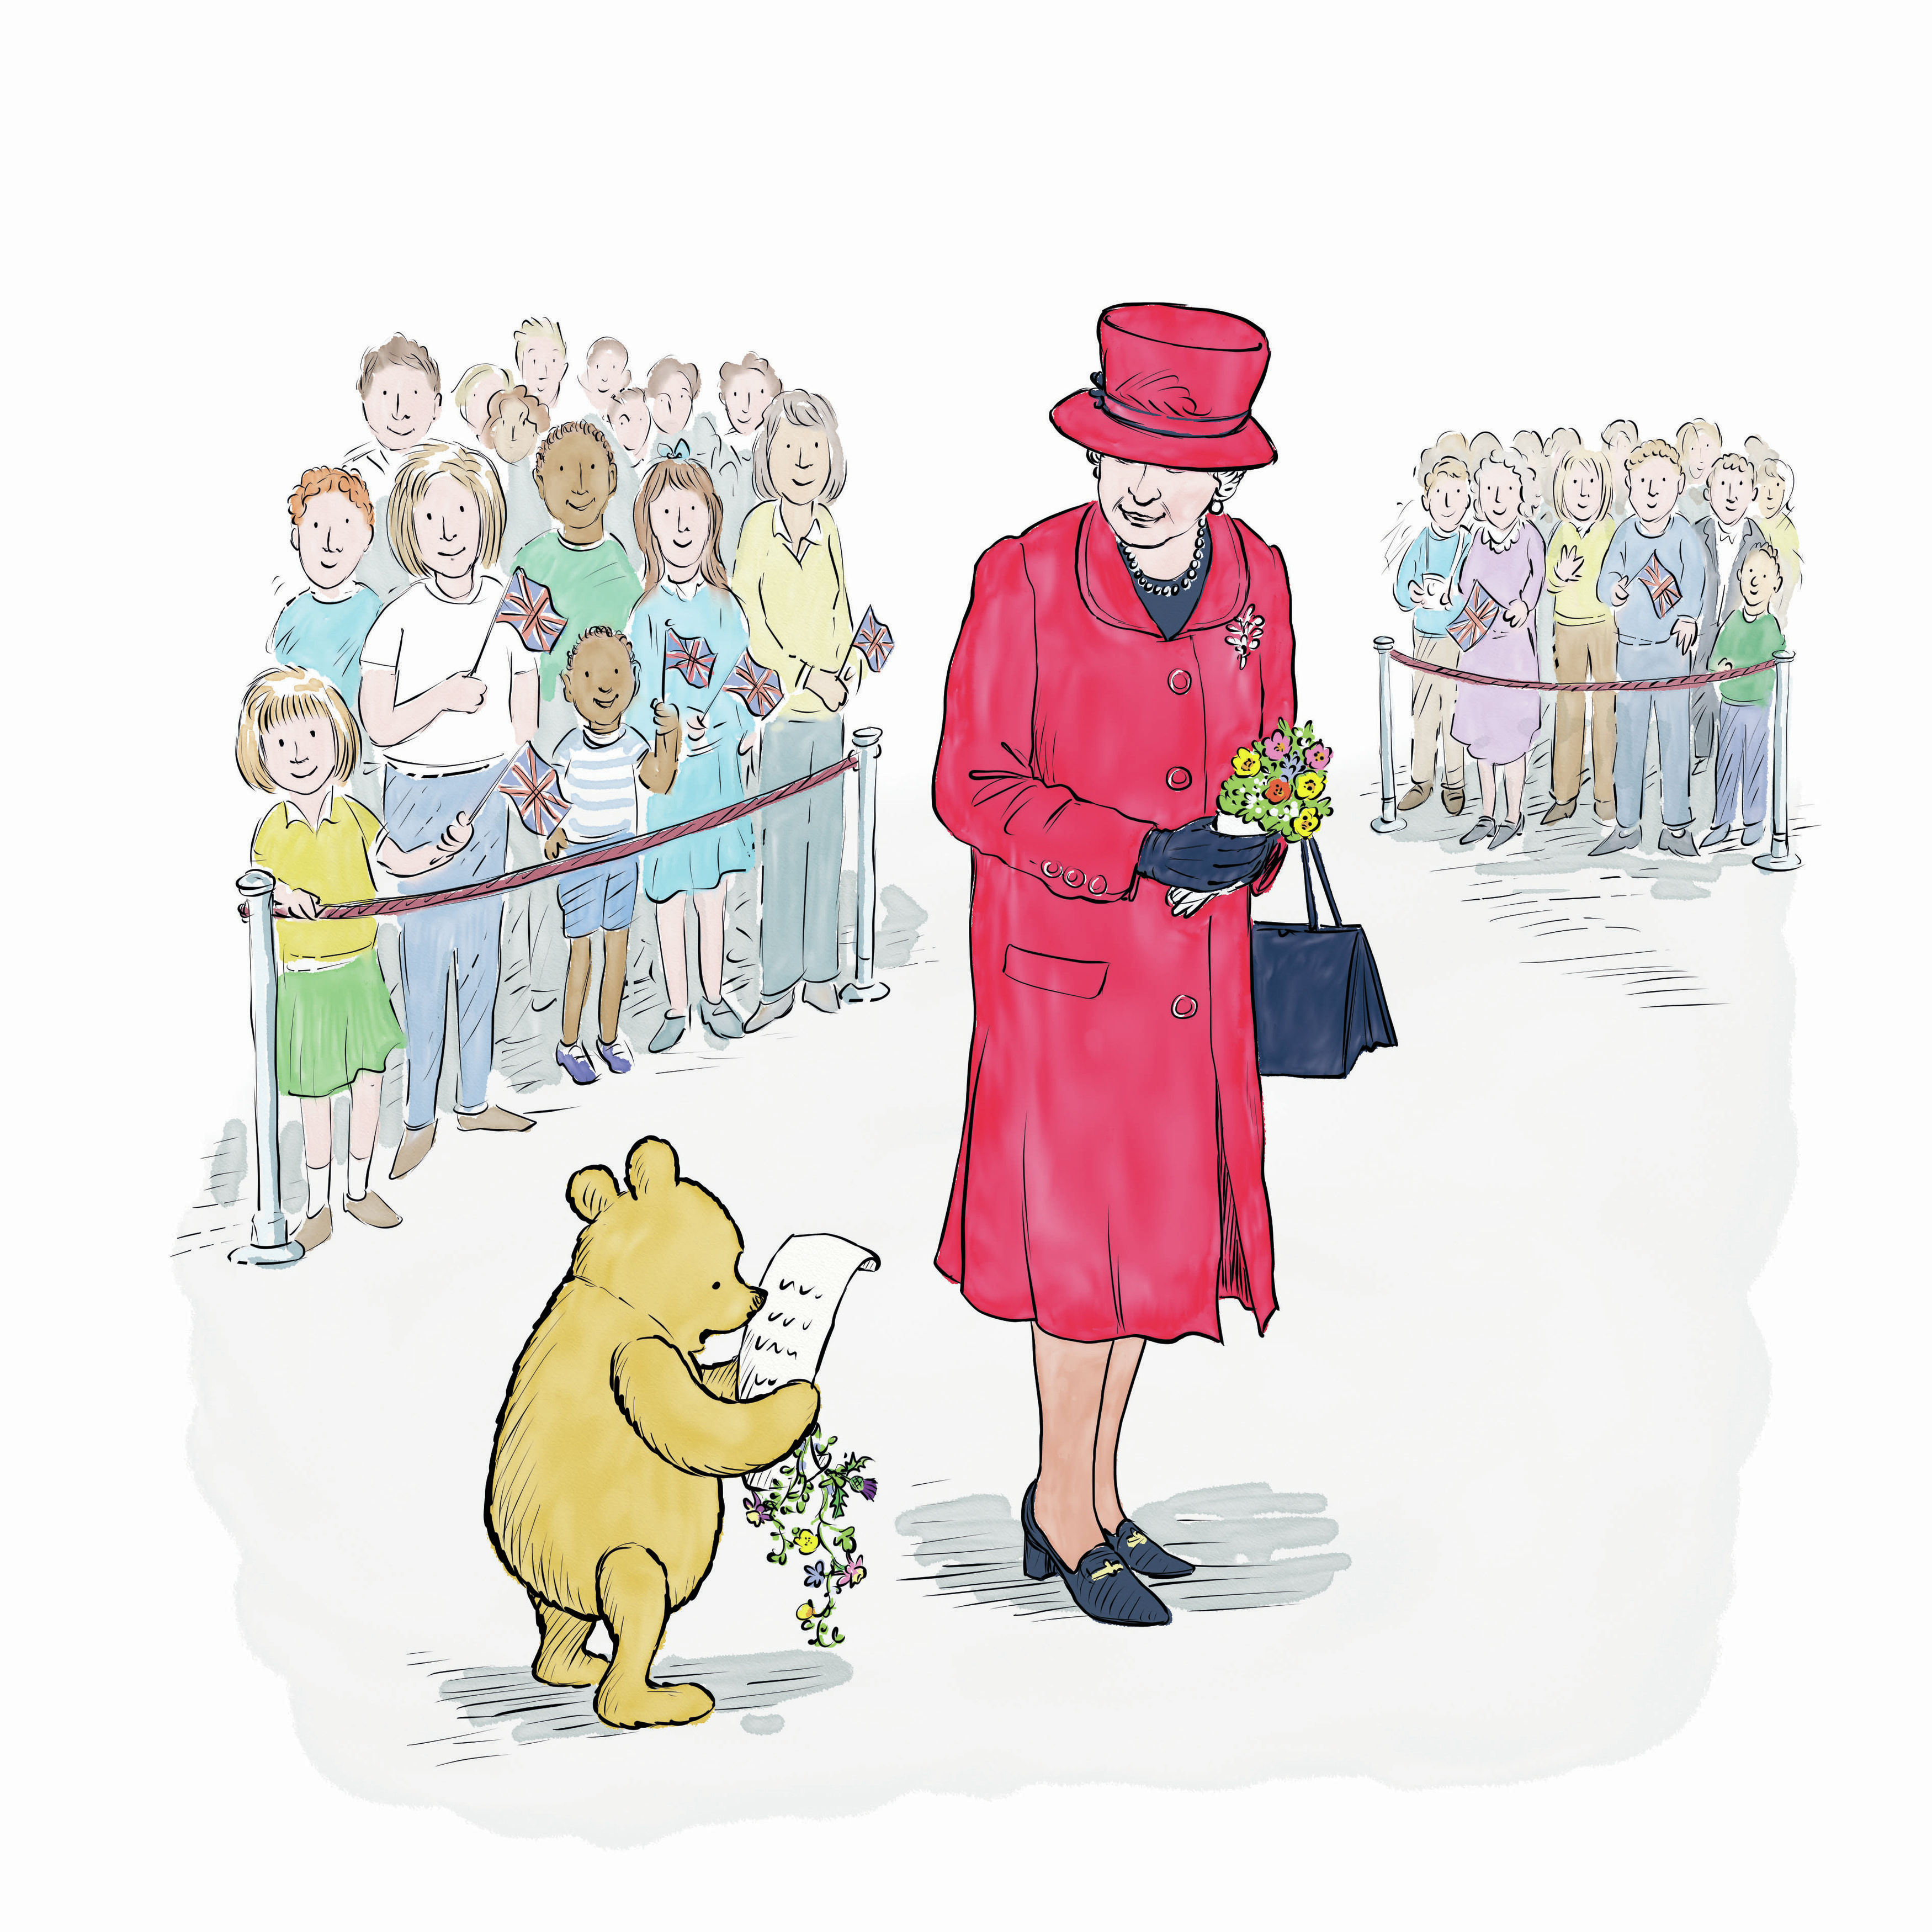 Winnie-The-Pooh And The Royal Birthday, a new adventure story has been released to celebrate both of their 90th birthdays, May 26, 2016.